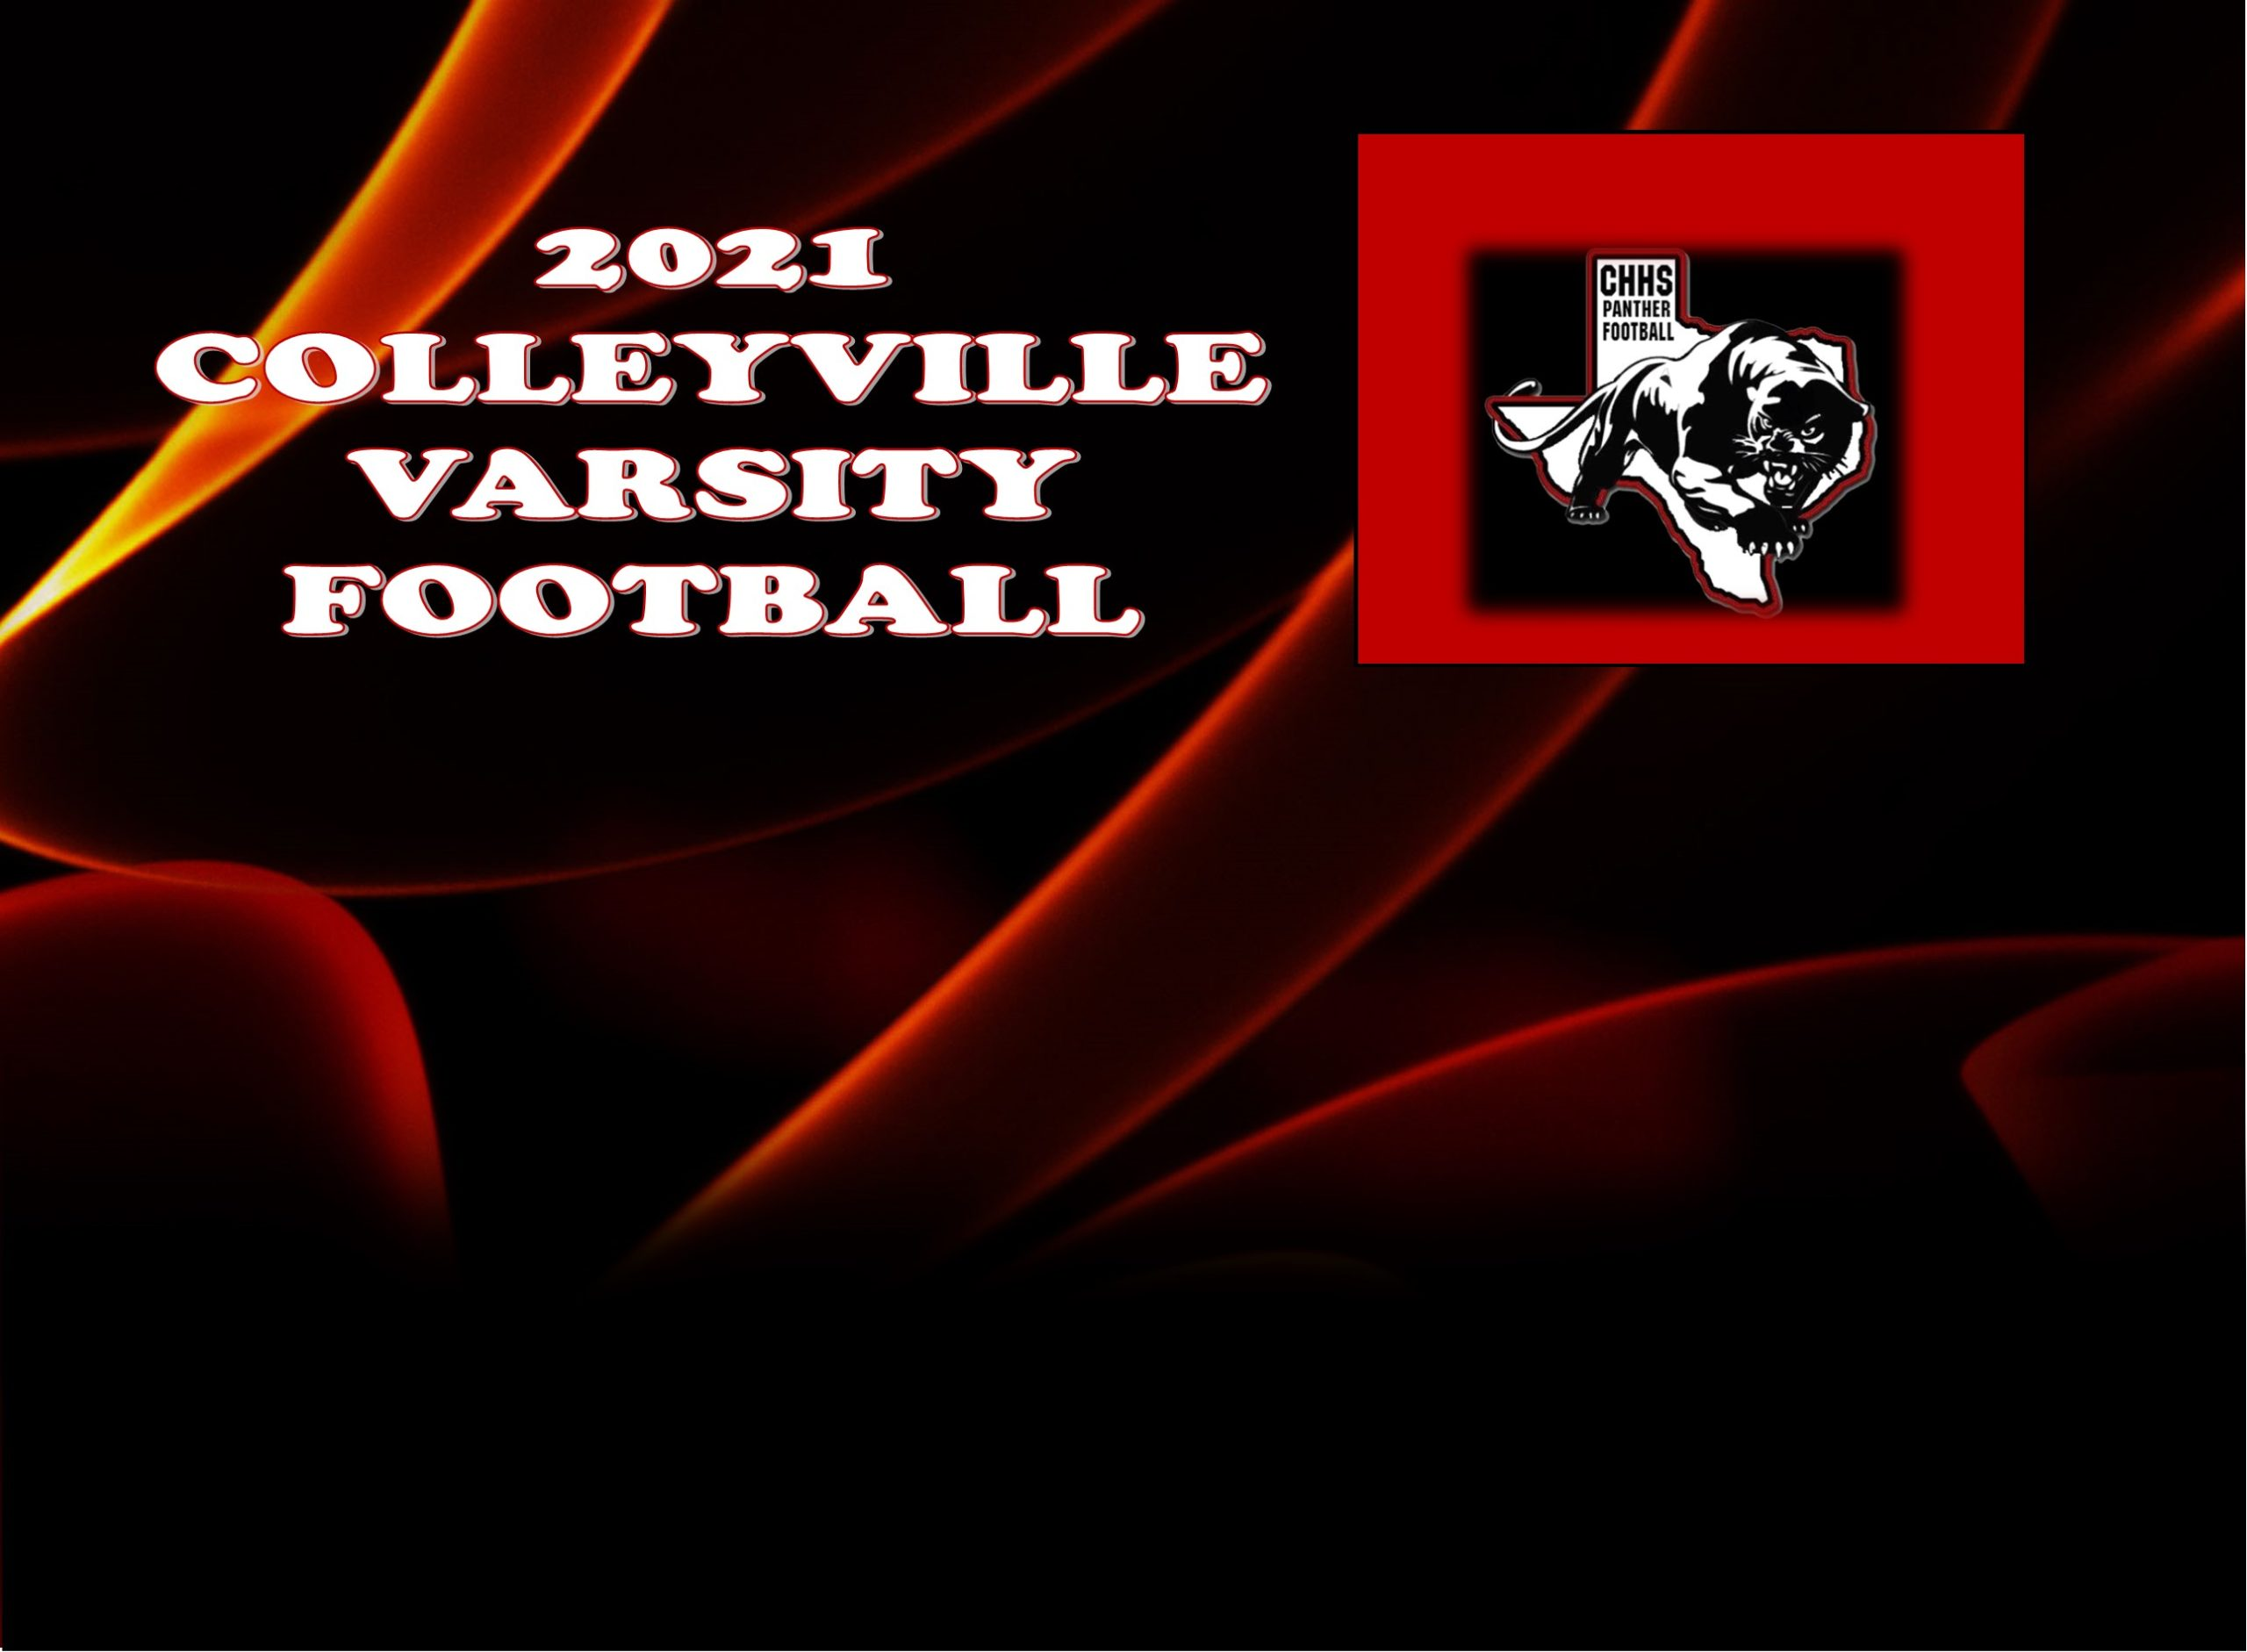 GCISD Football:  Colleyville Heritage Slips Past Mansfield Summit 35-34 to Remain Undefeated in District Play